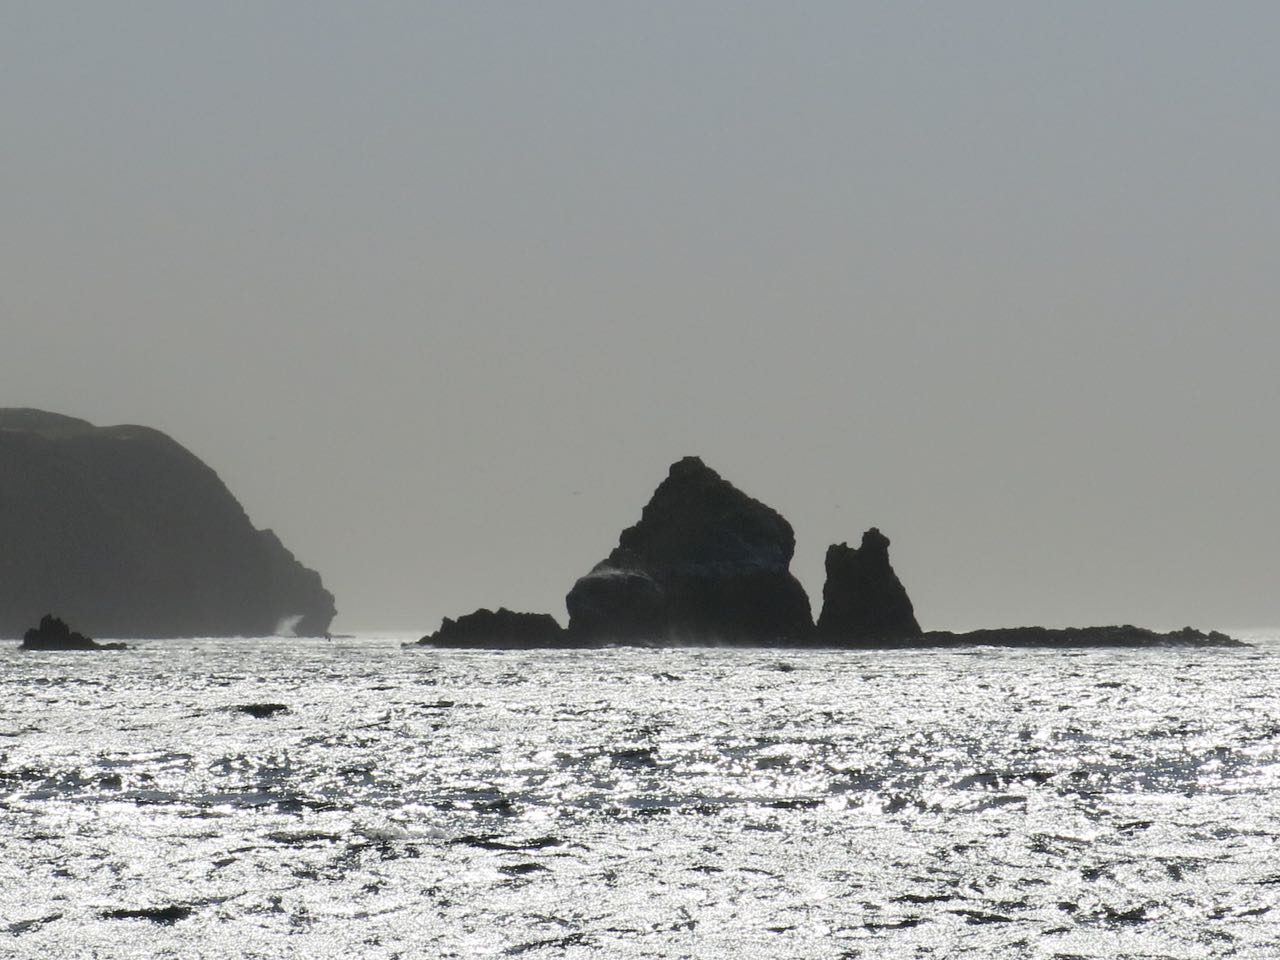 Go to Cat Rock on Anacapa Island with Capt. Dan Ryder and Sai Channel Islands